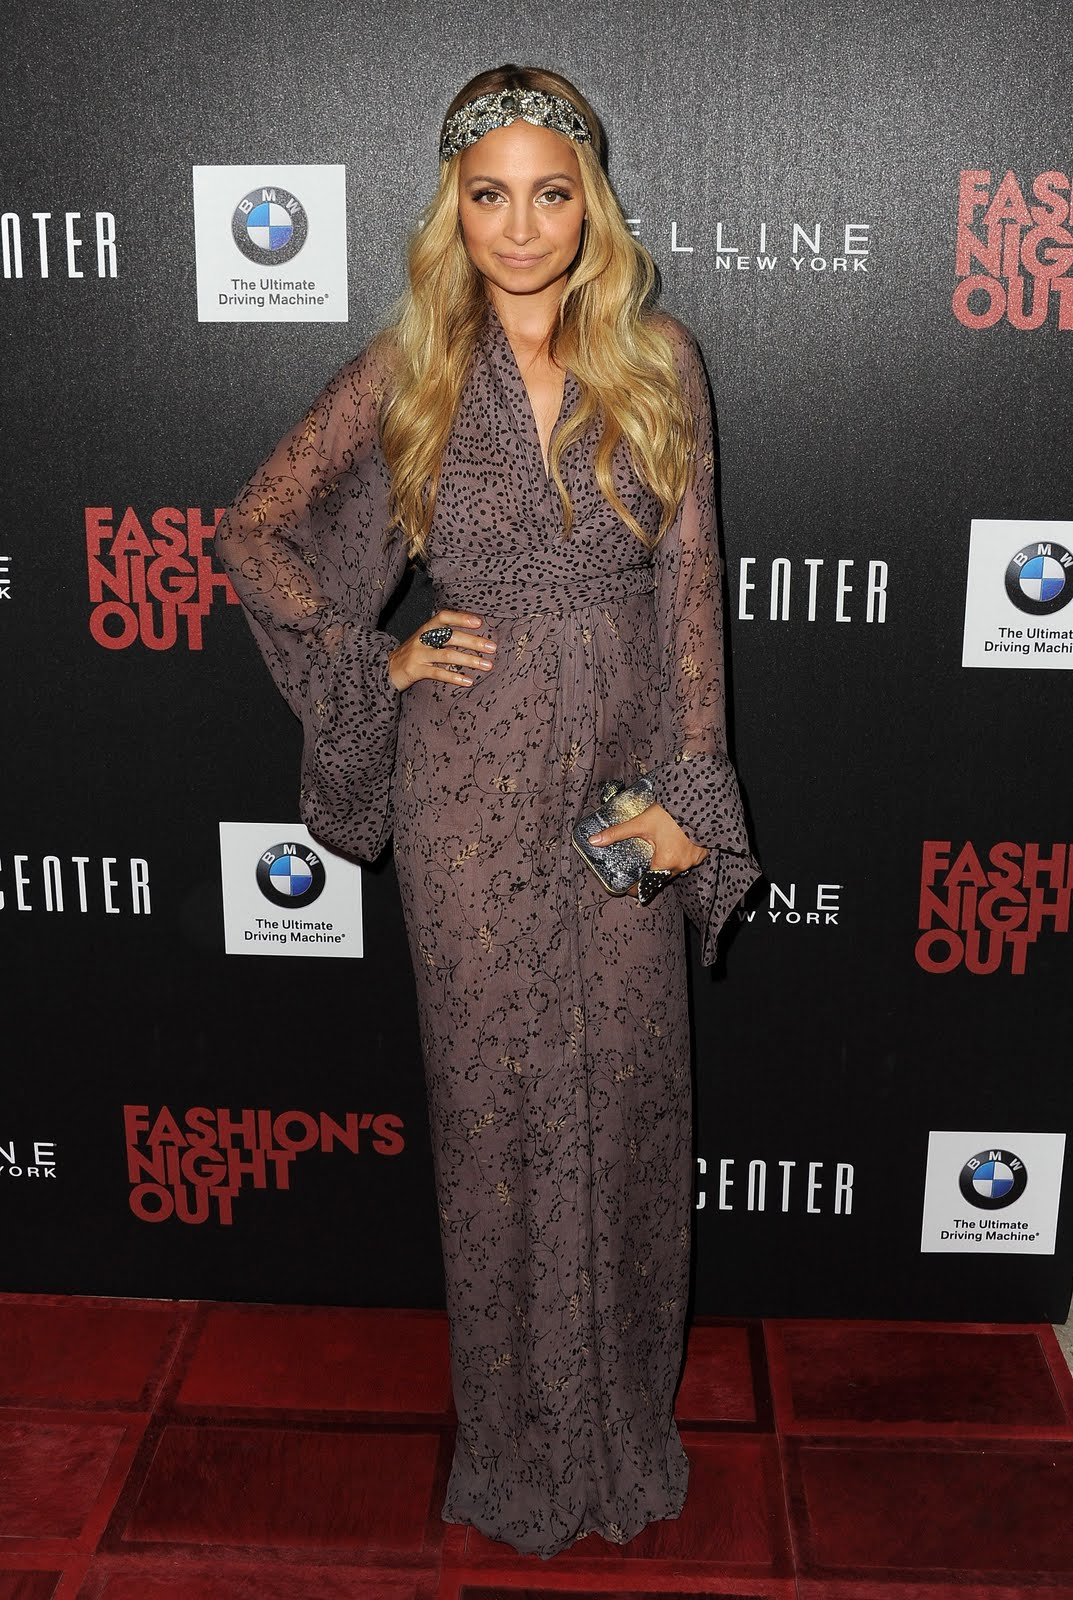 http://4.bp.blogspot.com/-0vFAhMnd8y8/Tmp0B9ck-dI/AAAAAAAAJno/TV3VtMYE4jY/s1600/nicole-richie-beverly-center-winter-kate-kimono-dress.jpg